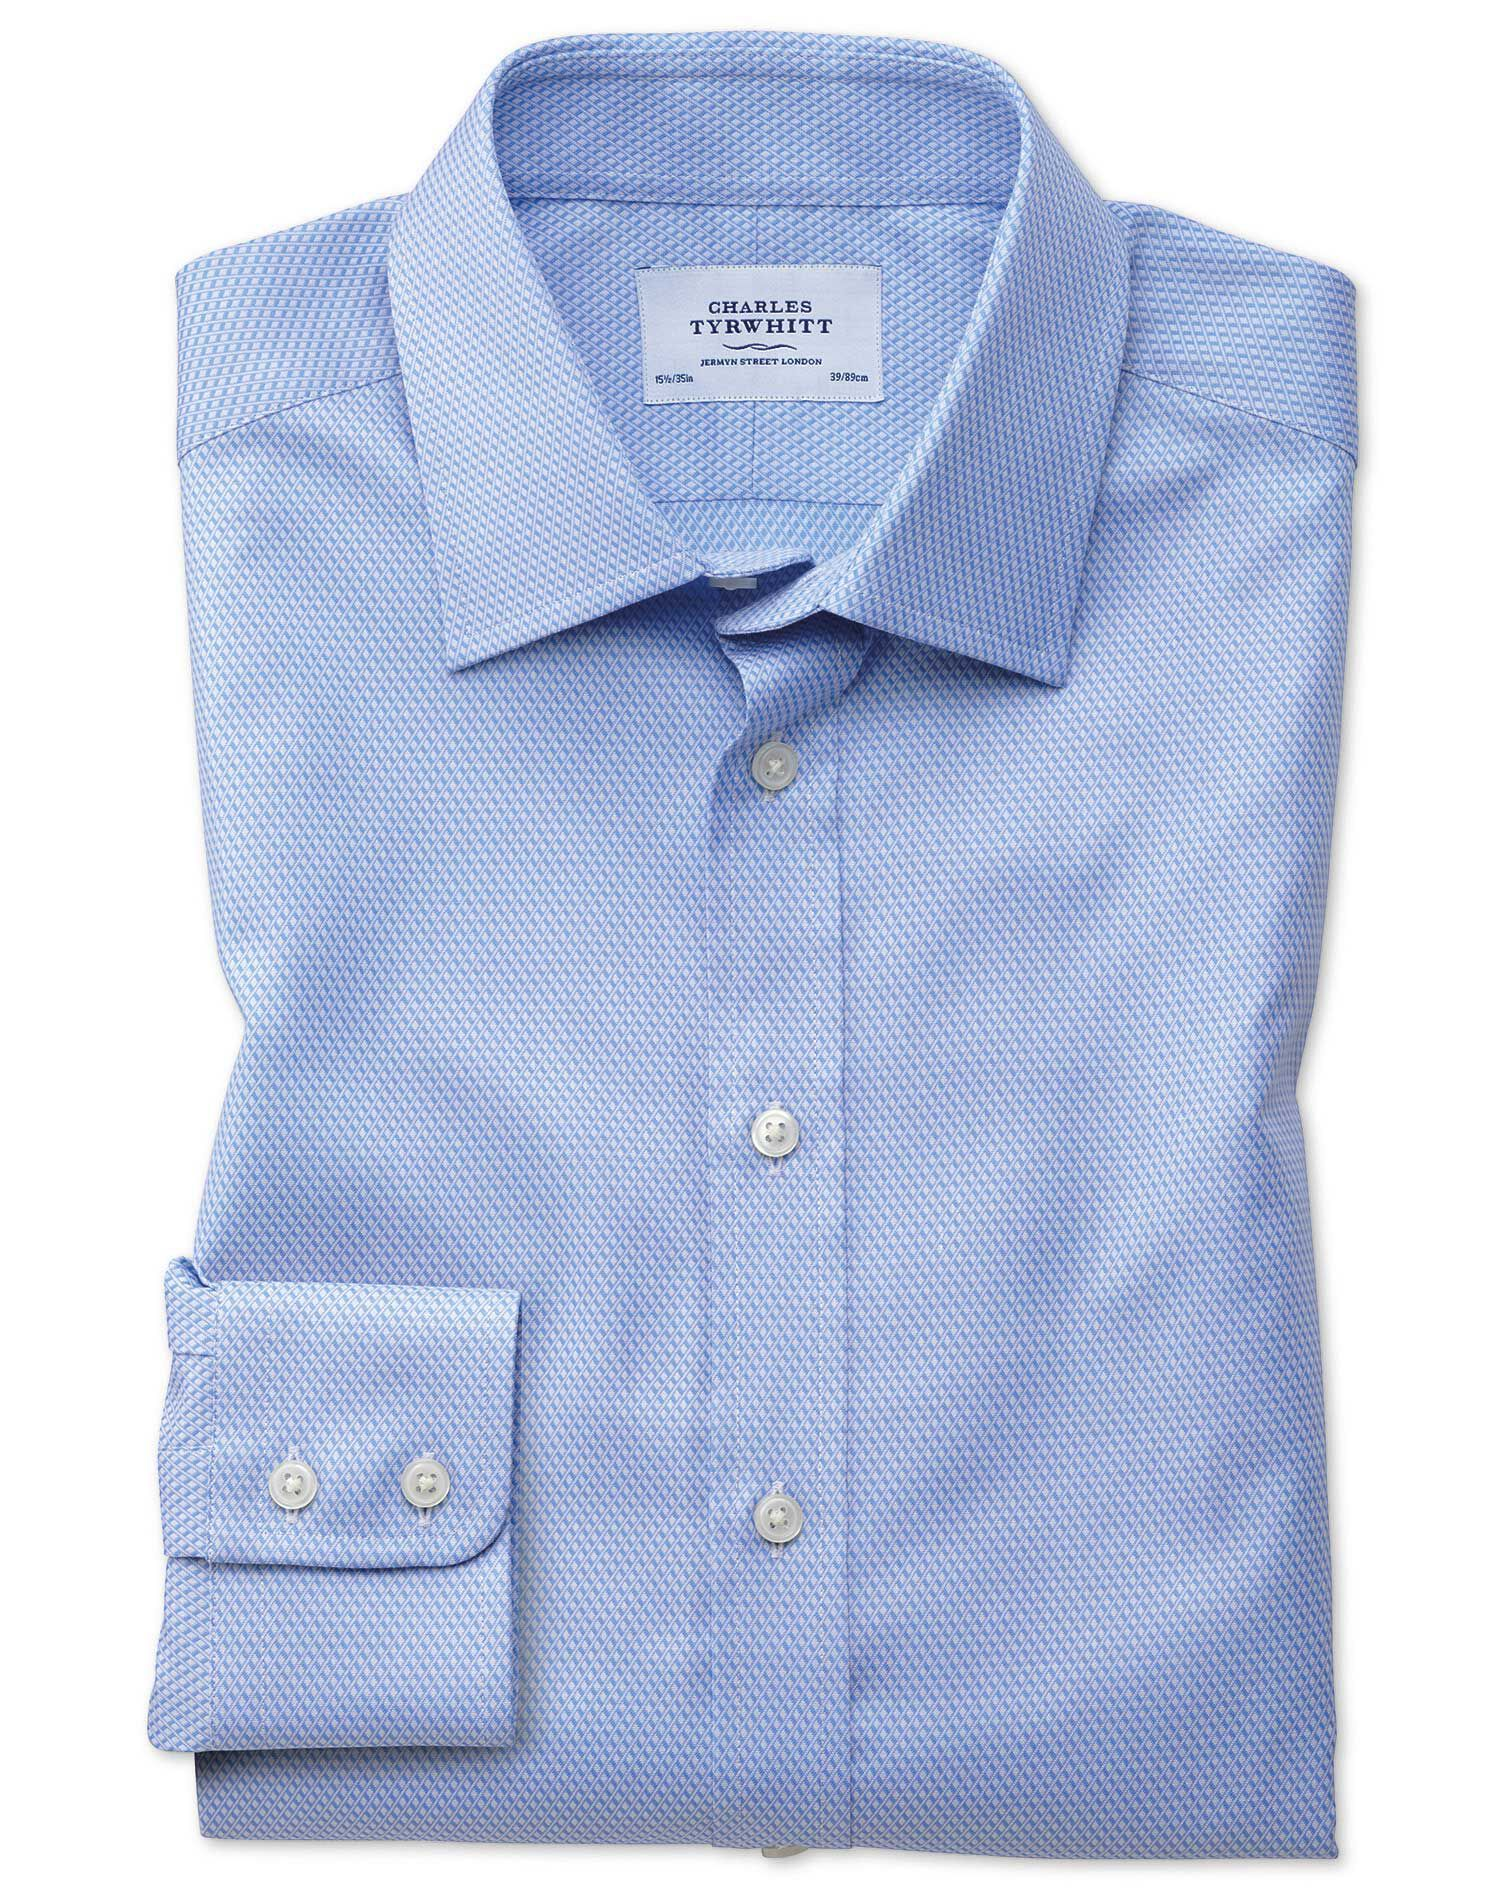 Slim Fit Egyptian Cotton Diamond Pattern Sky Blue Formal Shirt Single Cuff Size 16/33 by Charles Tyr